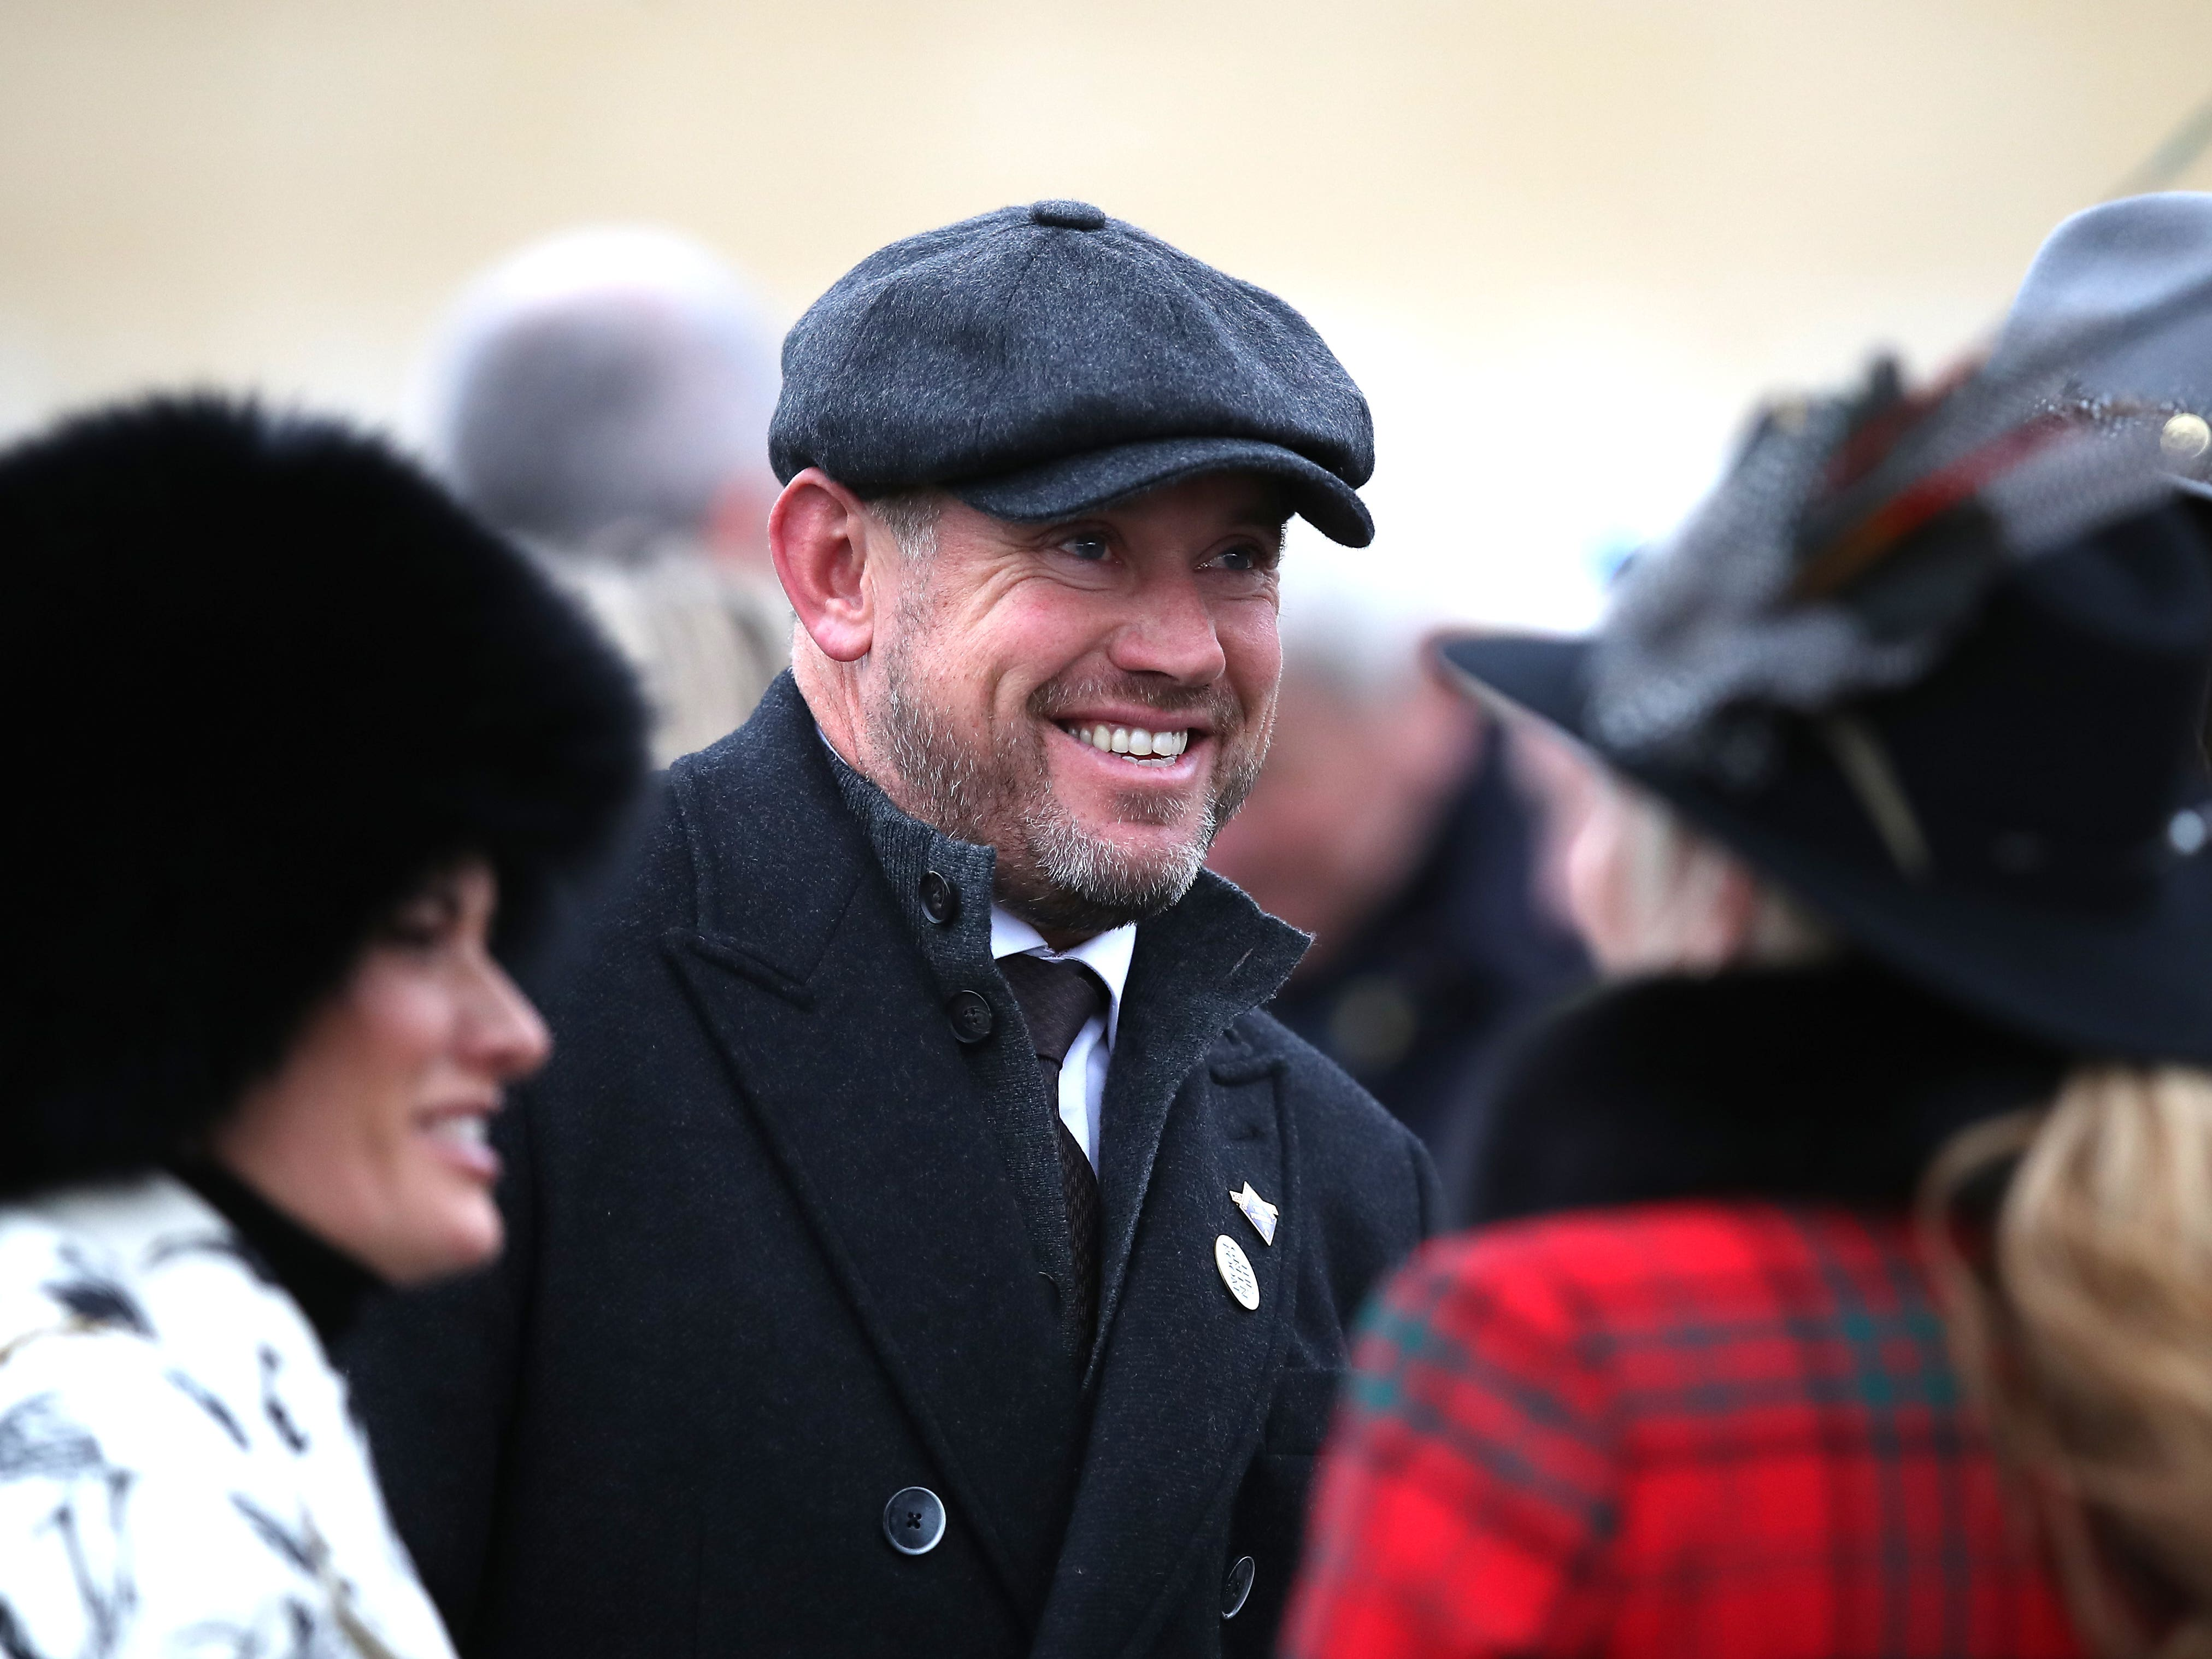 Lee Westwood pictured on day two at Cheltenham (Andrew Matthews)